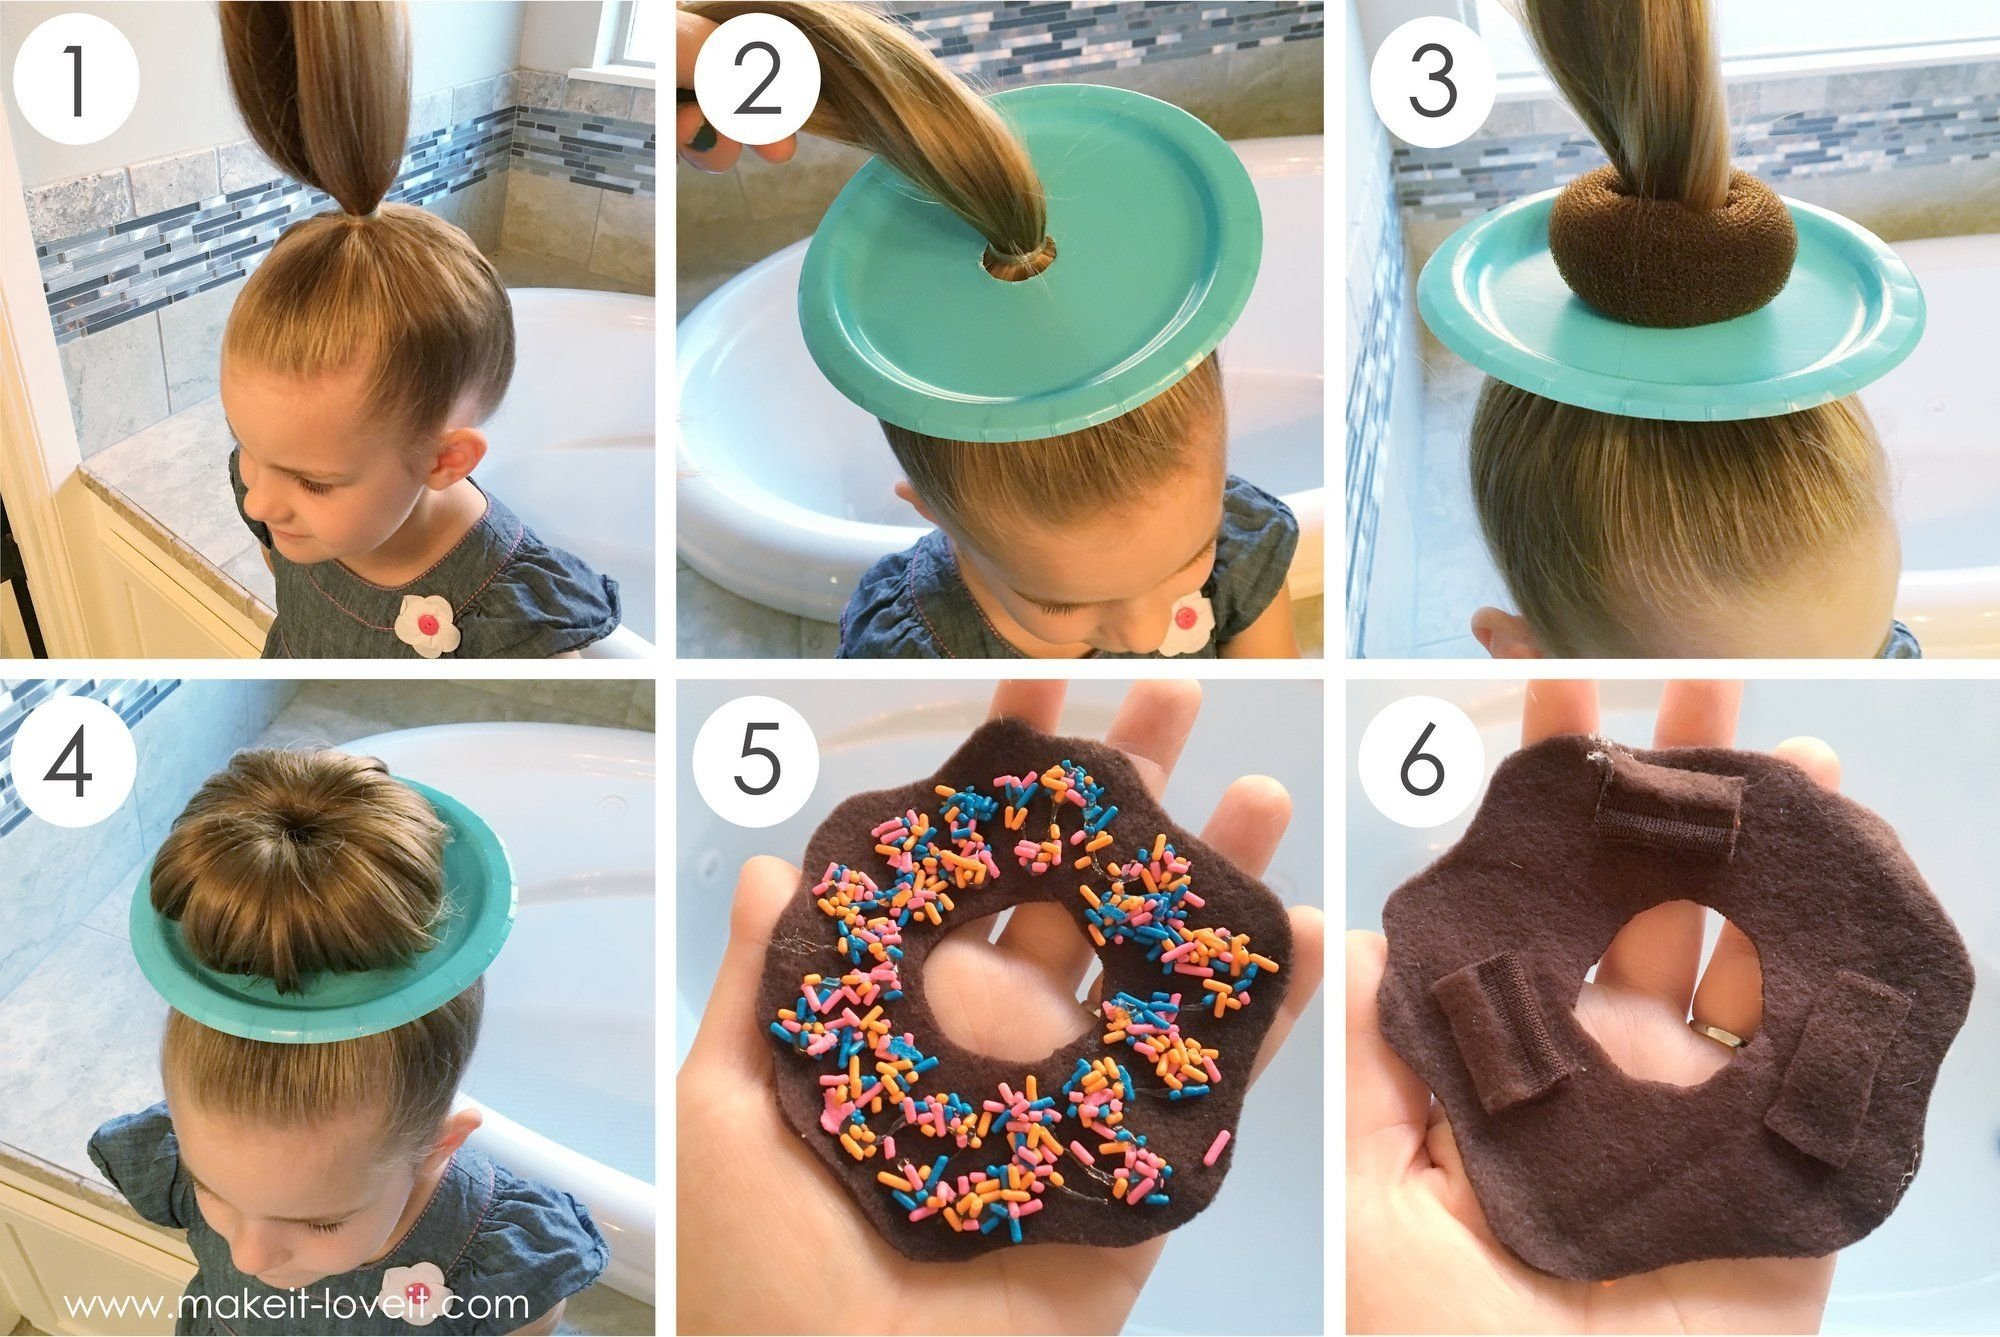 10 Most Recommended Crazy Hair Ideas For School 25 clever ideas for wacky hair day at school including 17